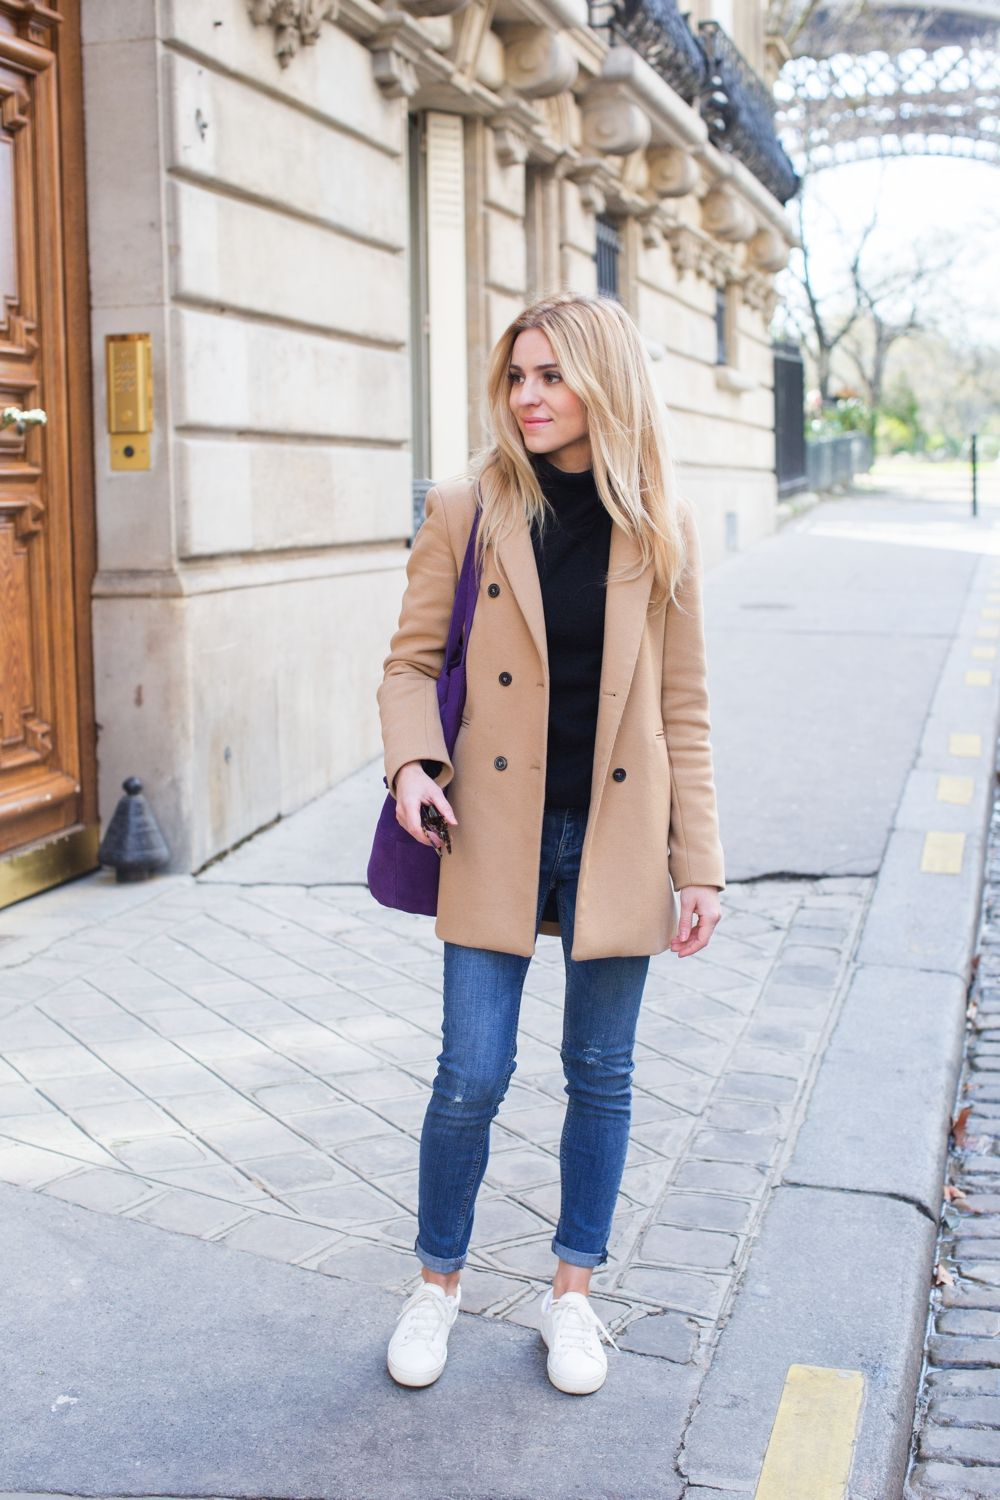 Casual winter outfit: black sweater, camel coat, jeans, white sneakers and  purple